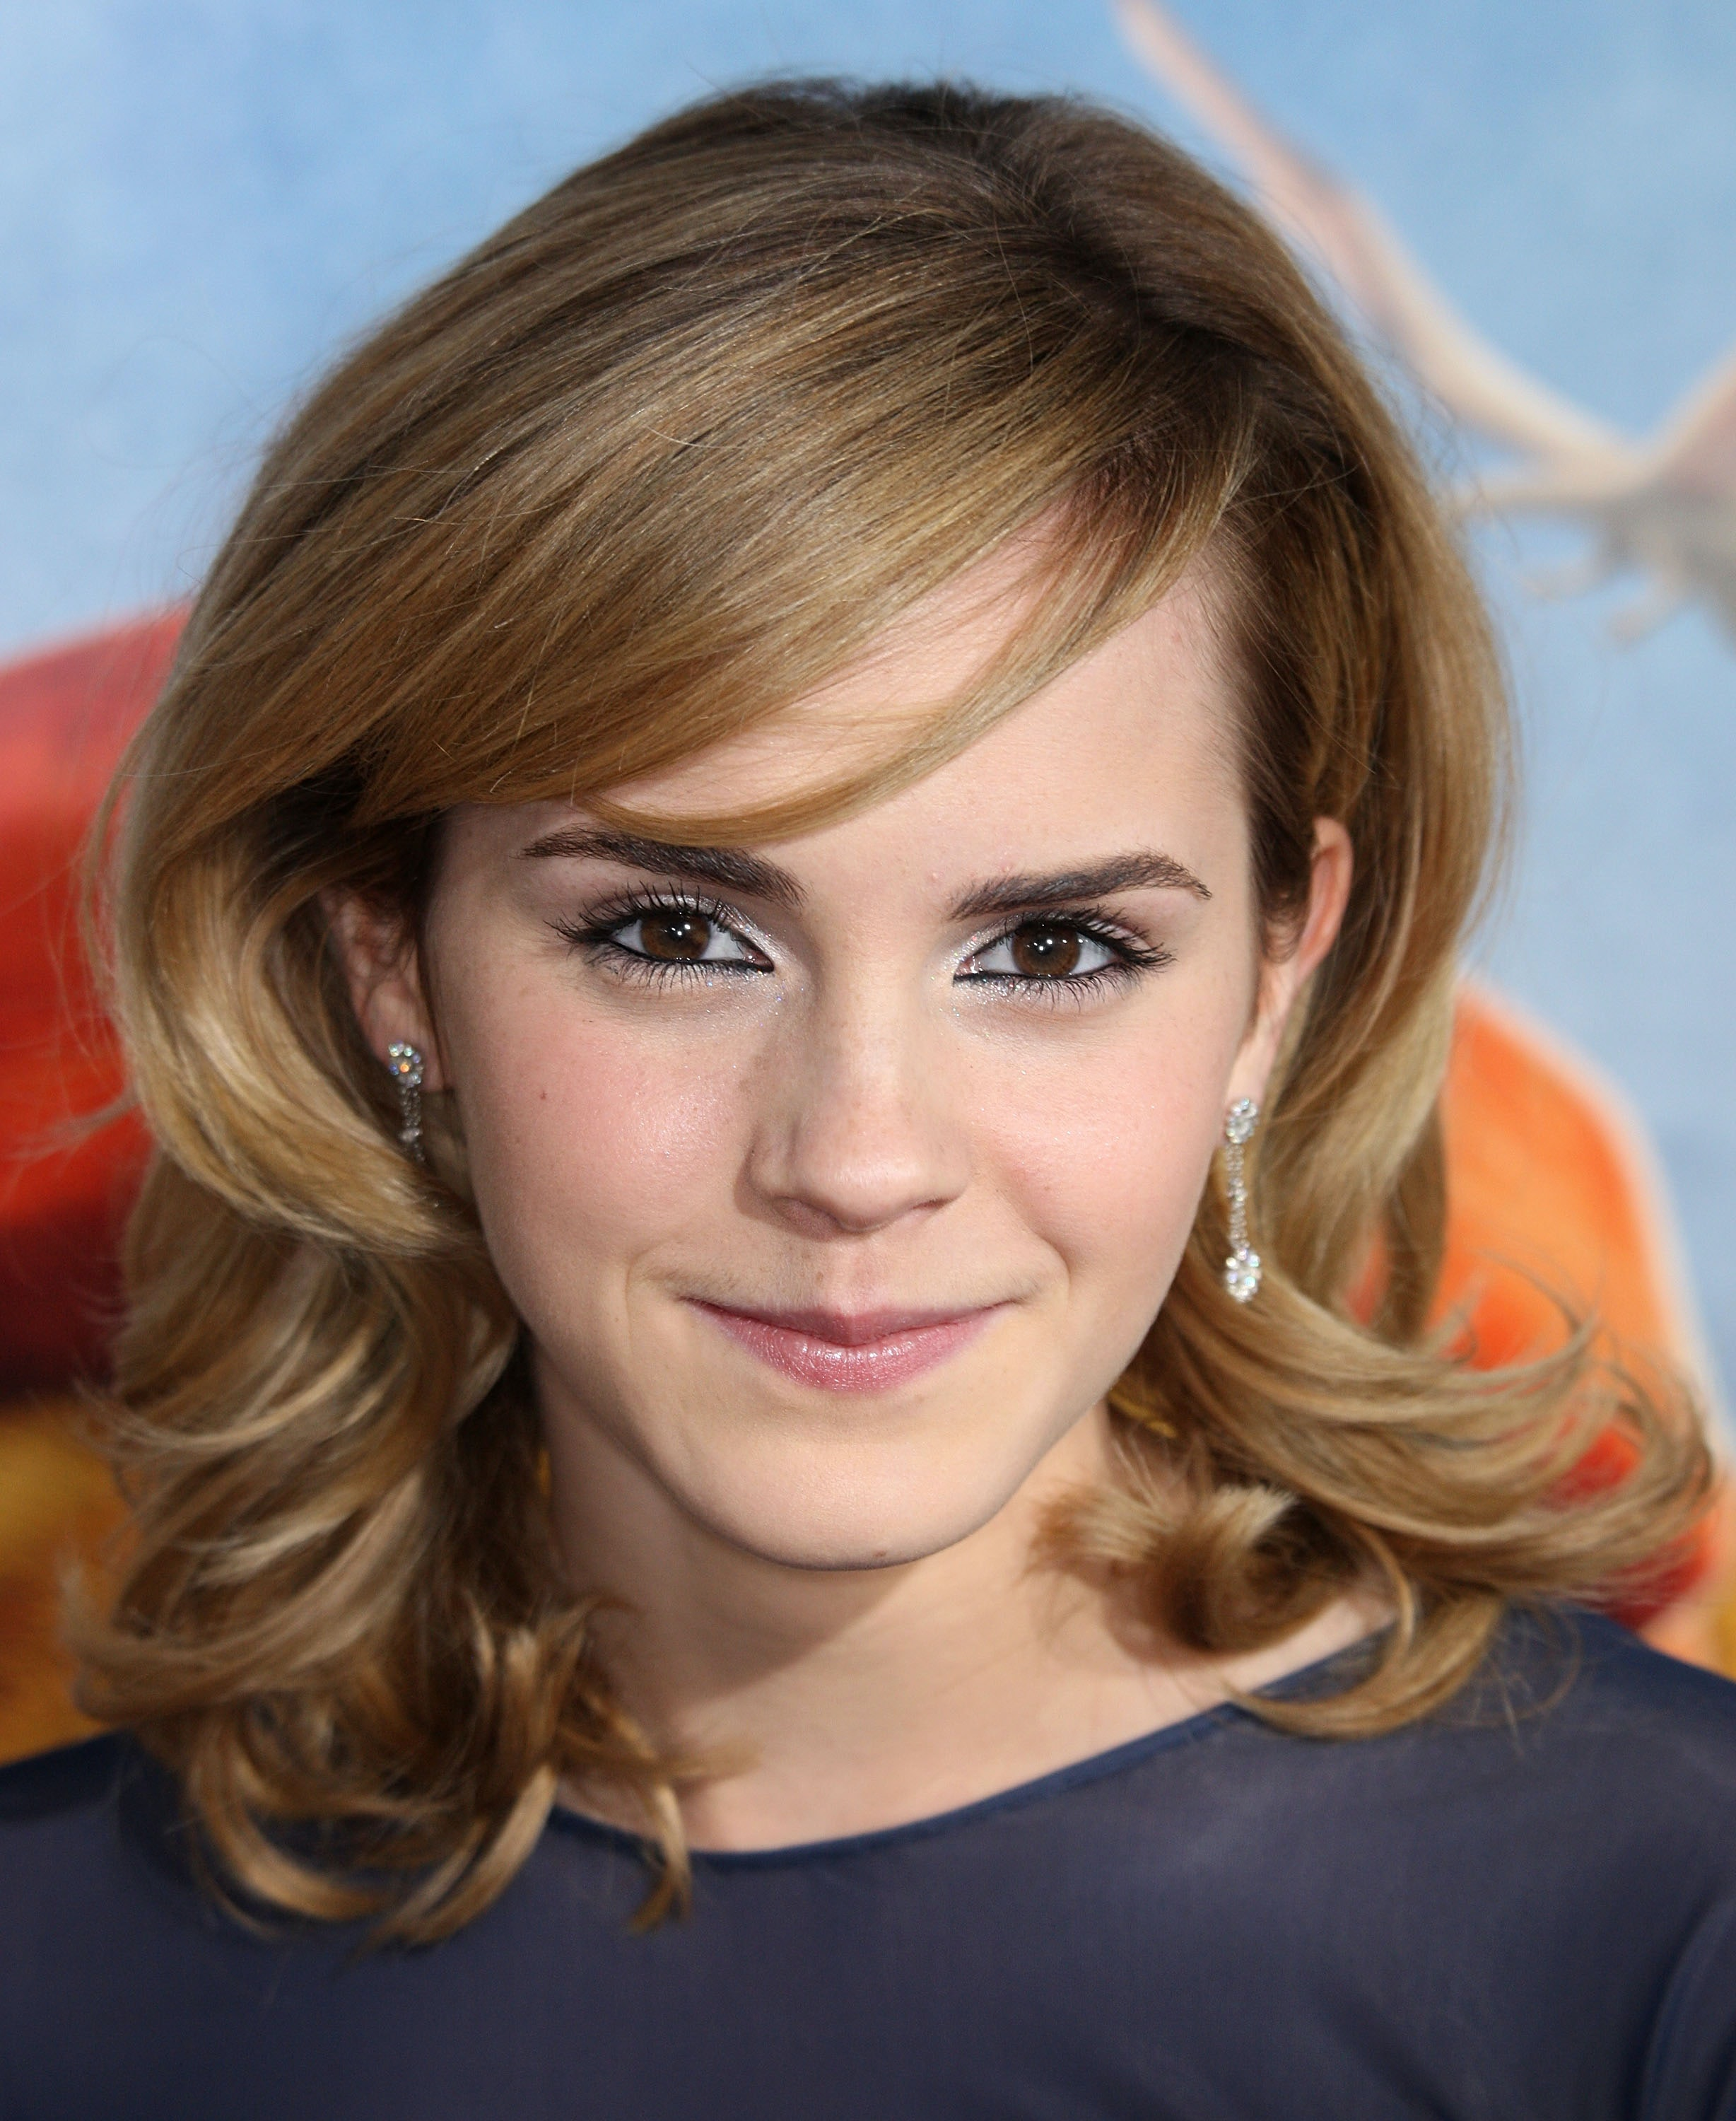 Emma watsons 10 best hairstyles over the years urmus Image collections